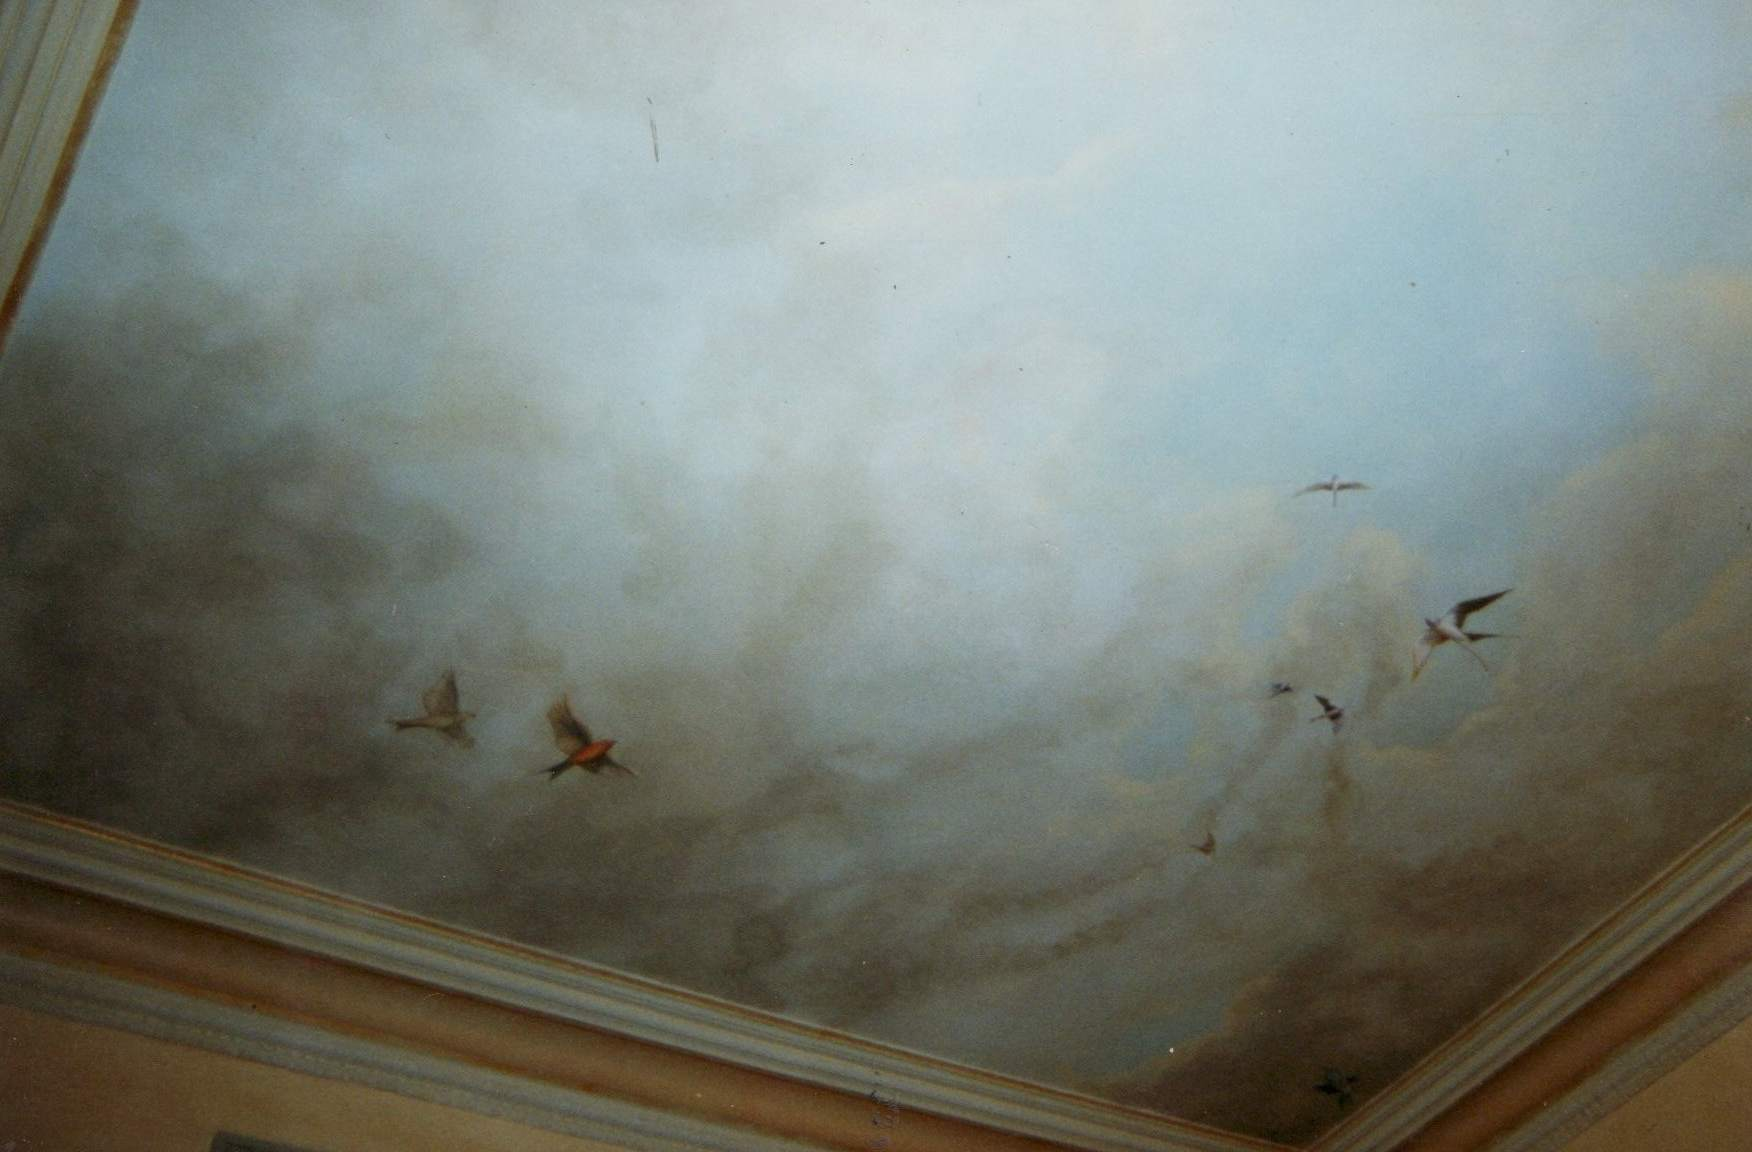 Painted ceiling small birds flying across a stormy sky. - KBMorgan